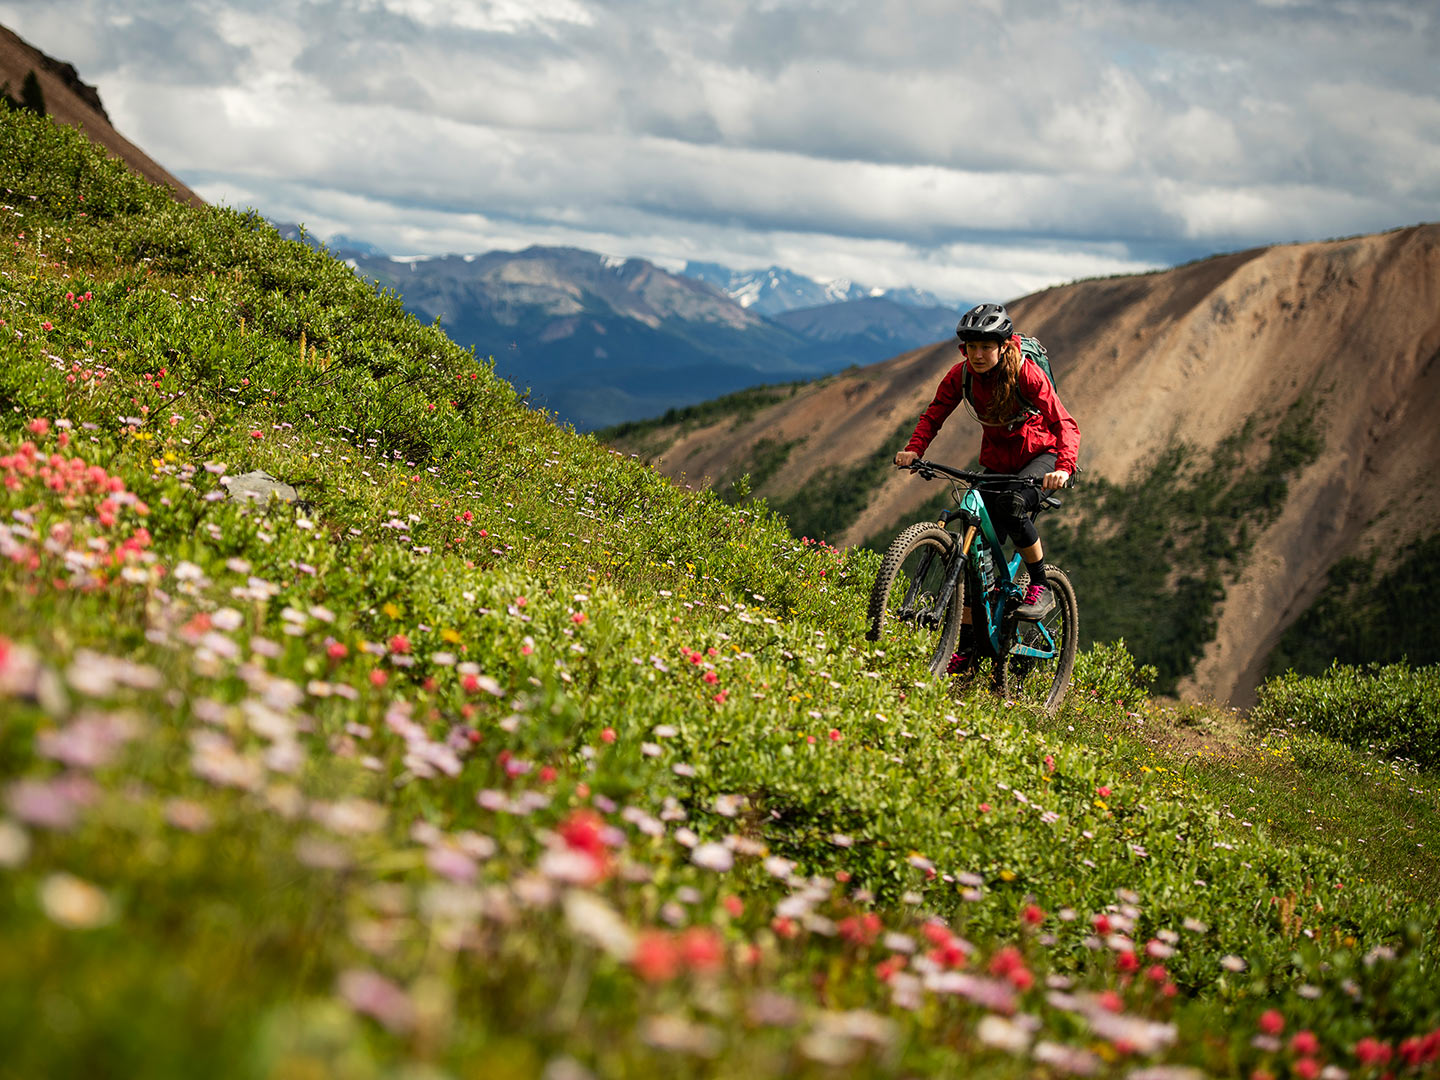 Rider climbs up mountain trail with wildflowers